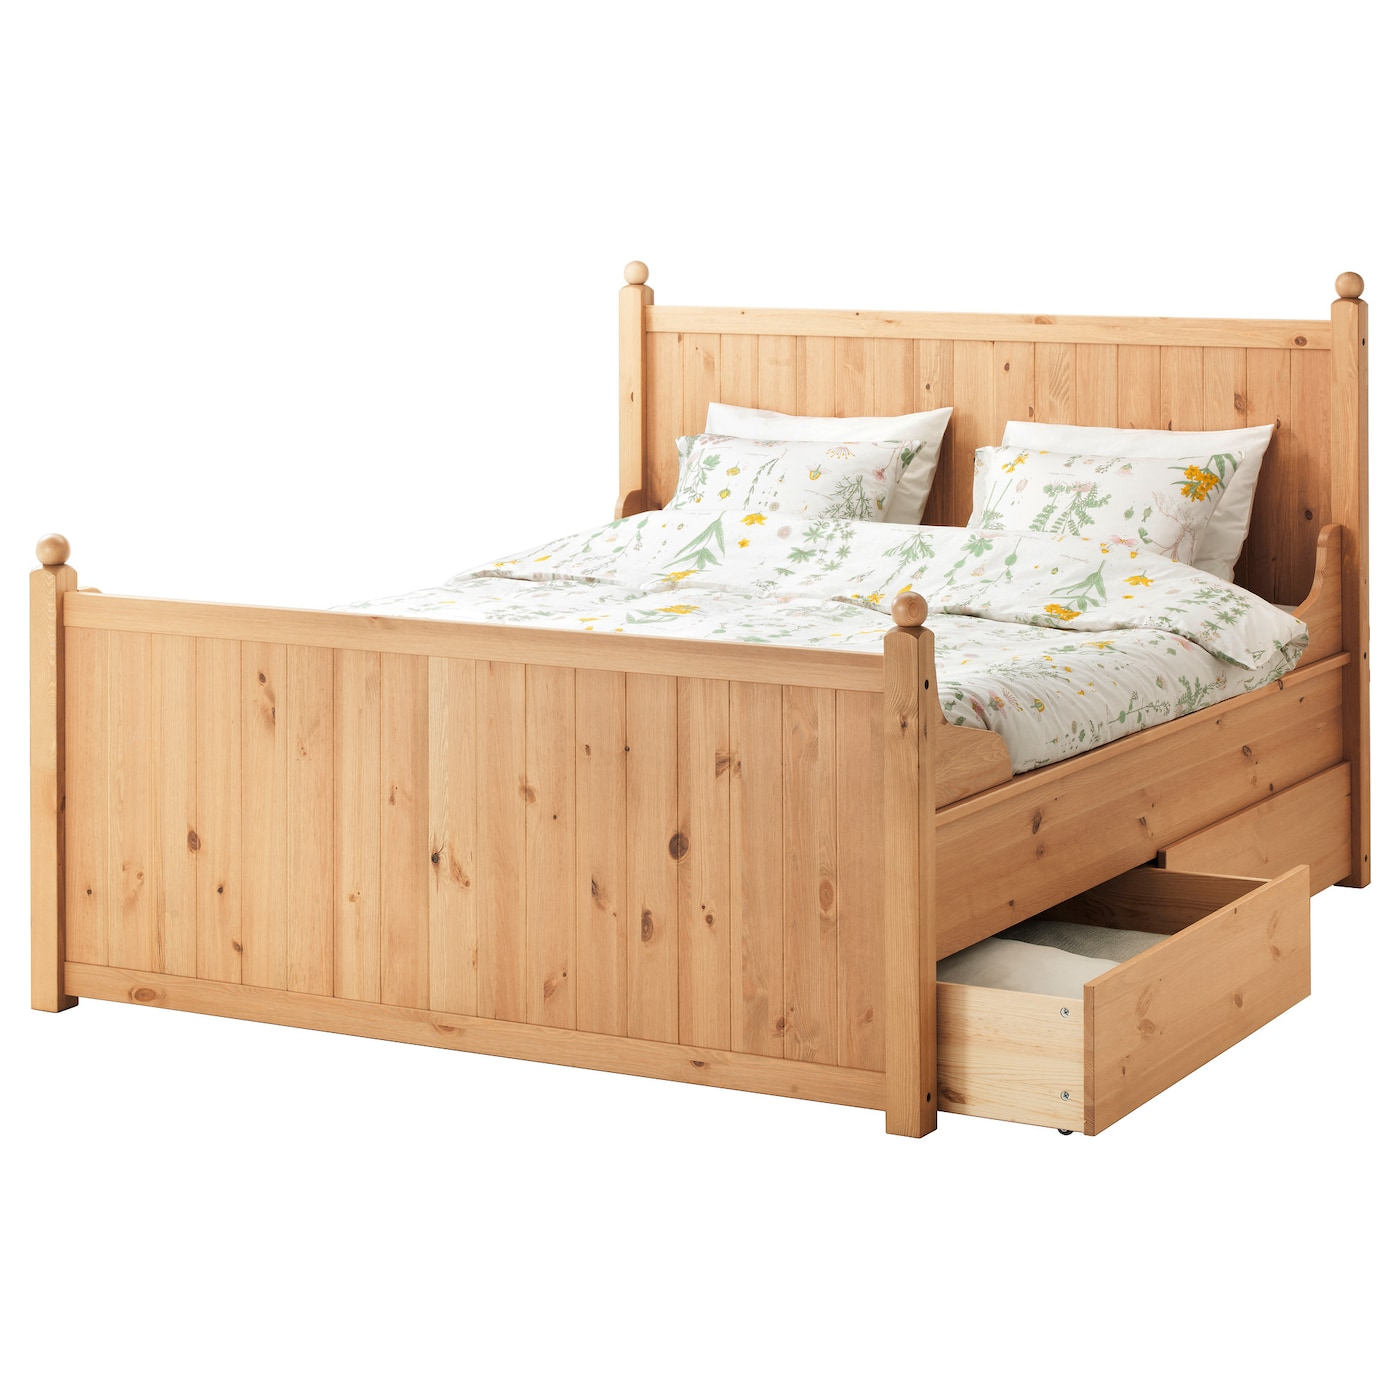 Hurdal Bed Frame With 4 Storage Boxes Light Brown L Nset